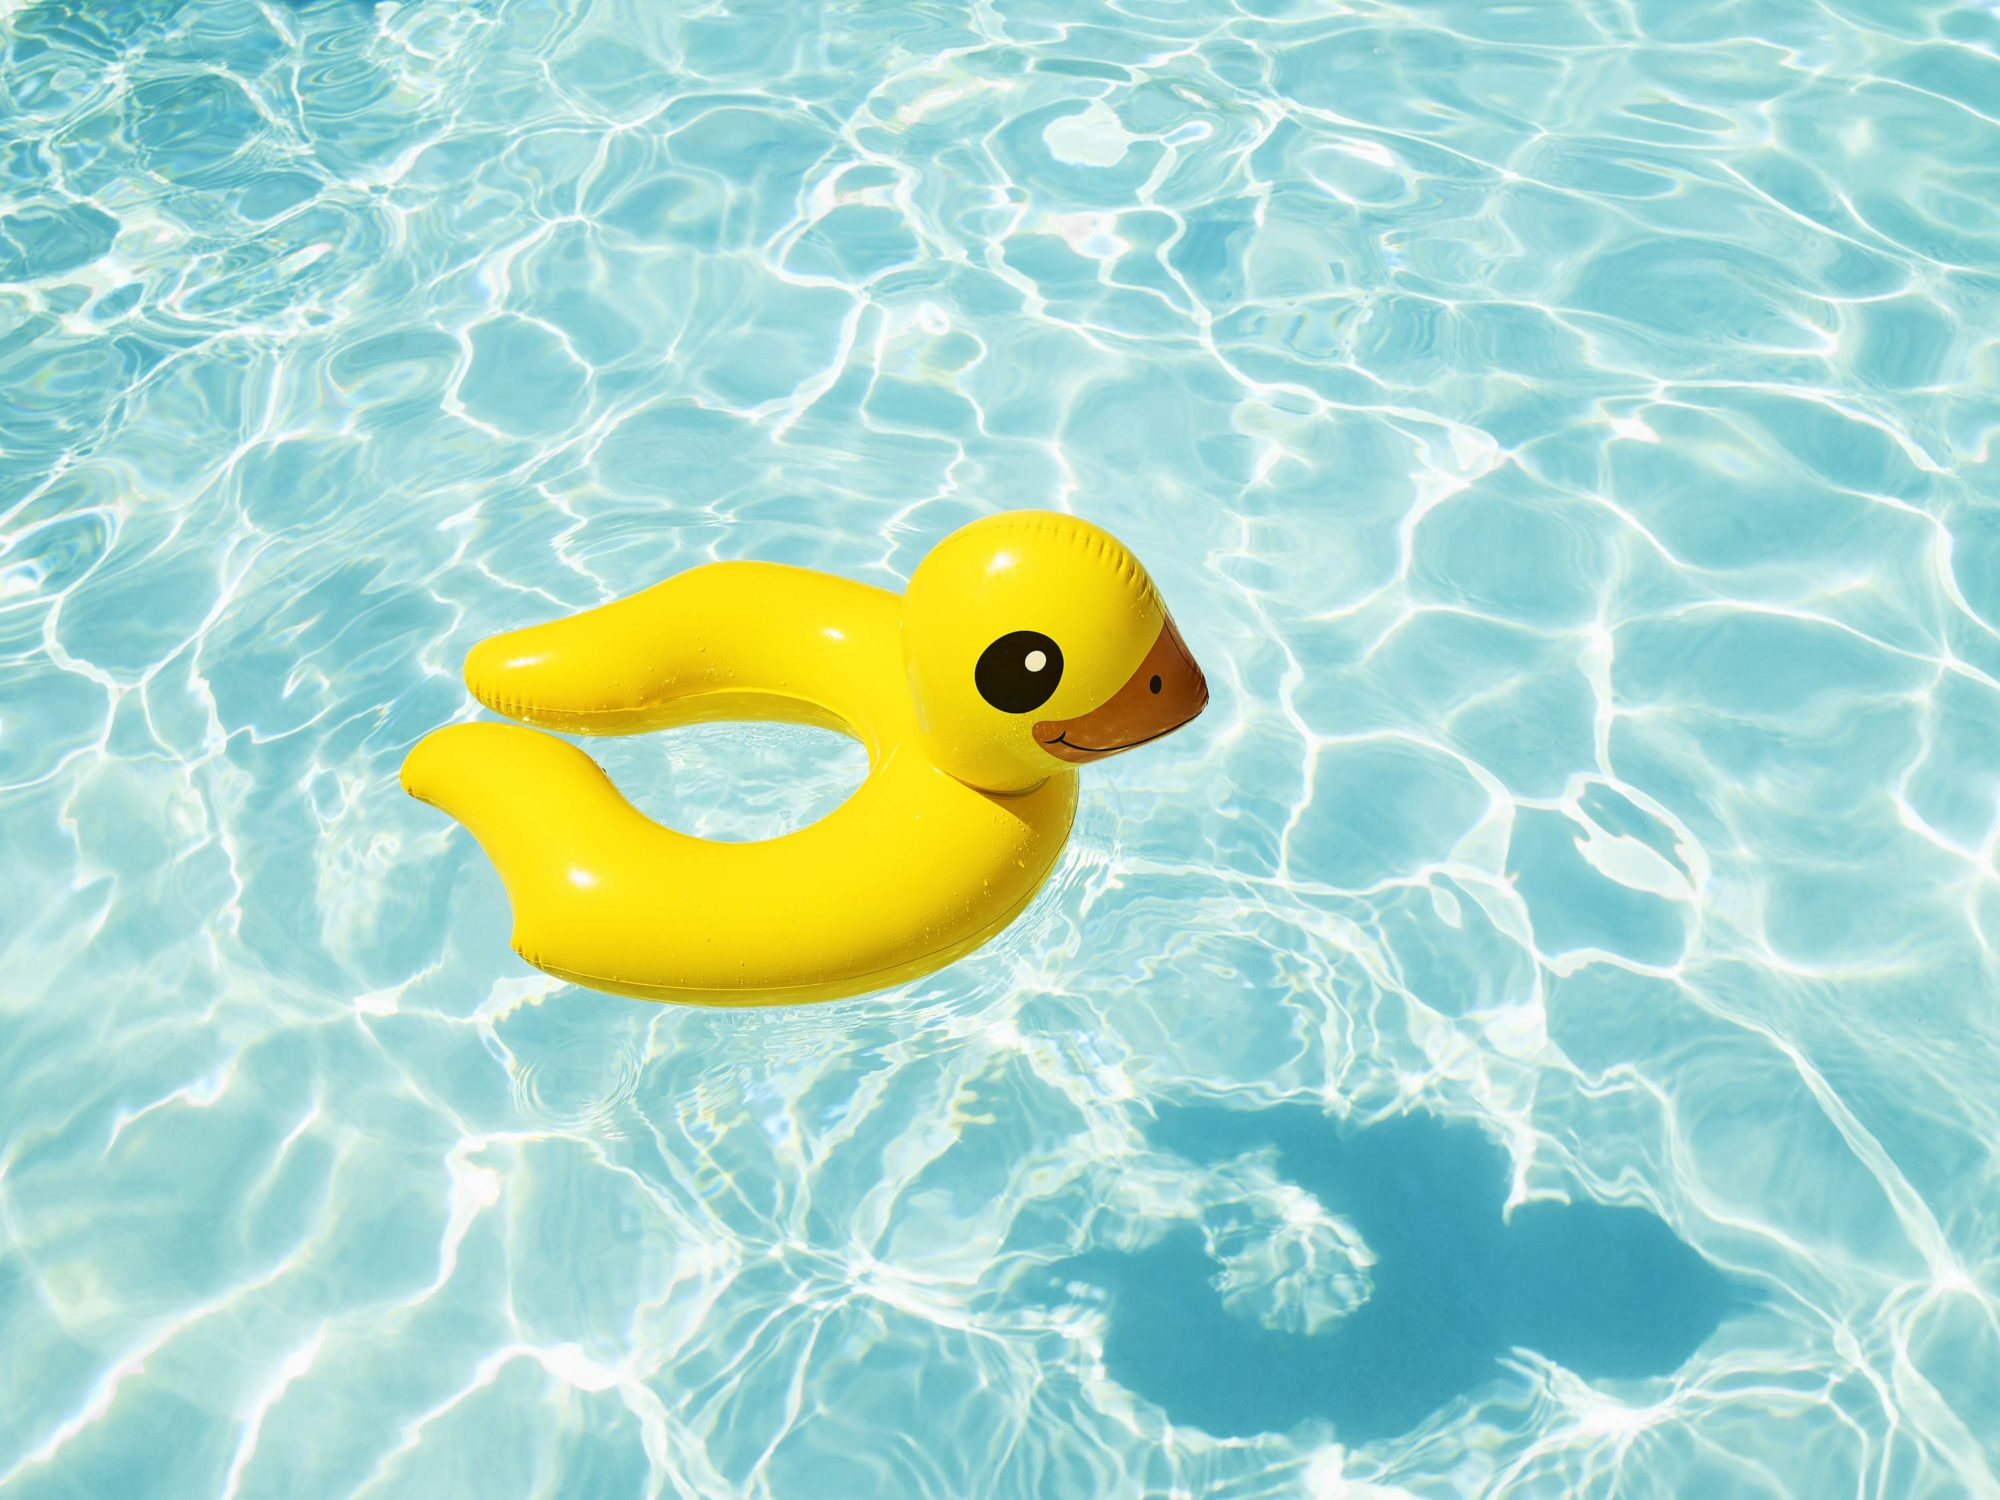 Duckie - I Heart Palm Springs Collection - Fine Art Photography by Toby Dixon